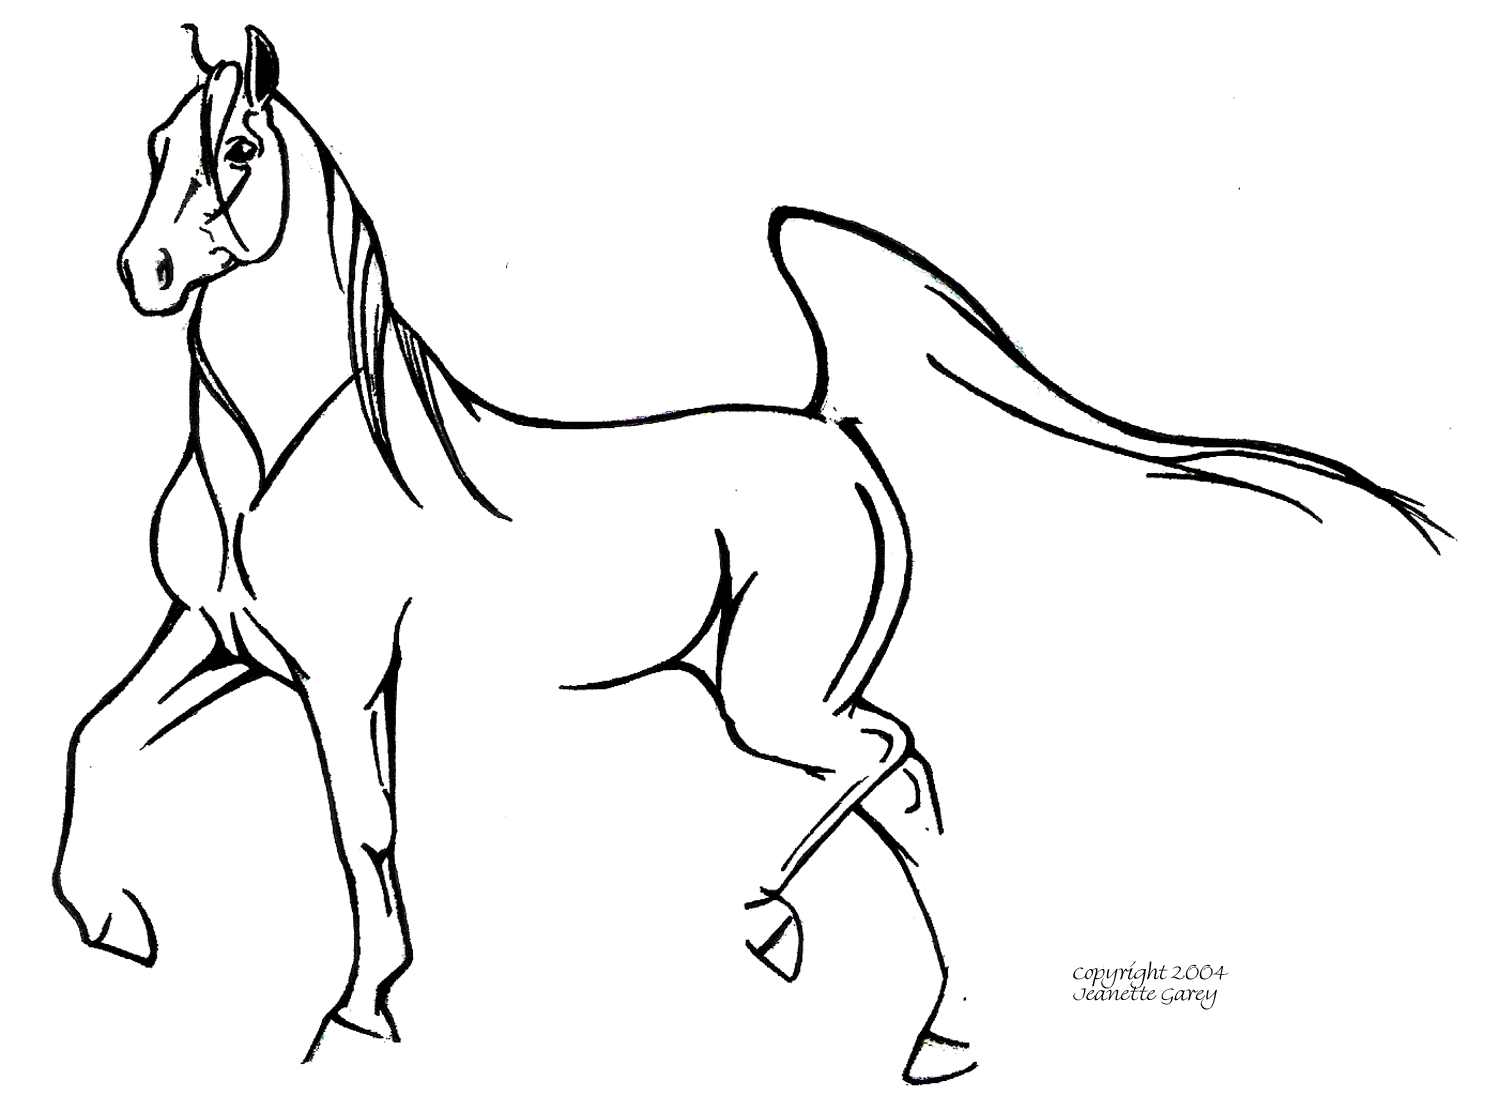 Contour Line Drawings Of Animals : Some talk about art